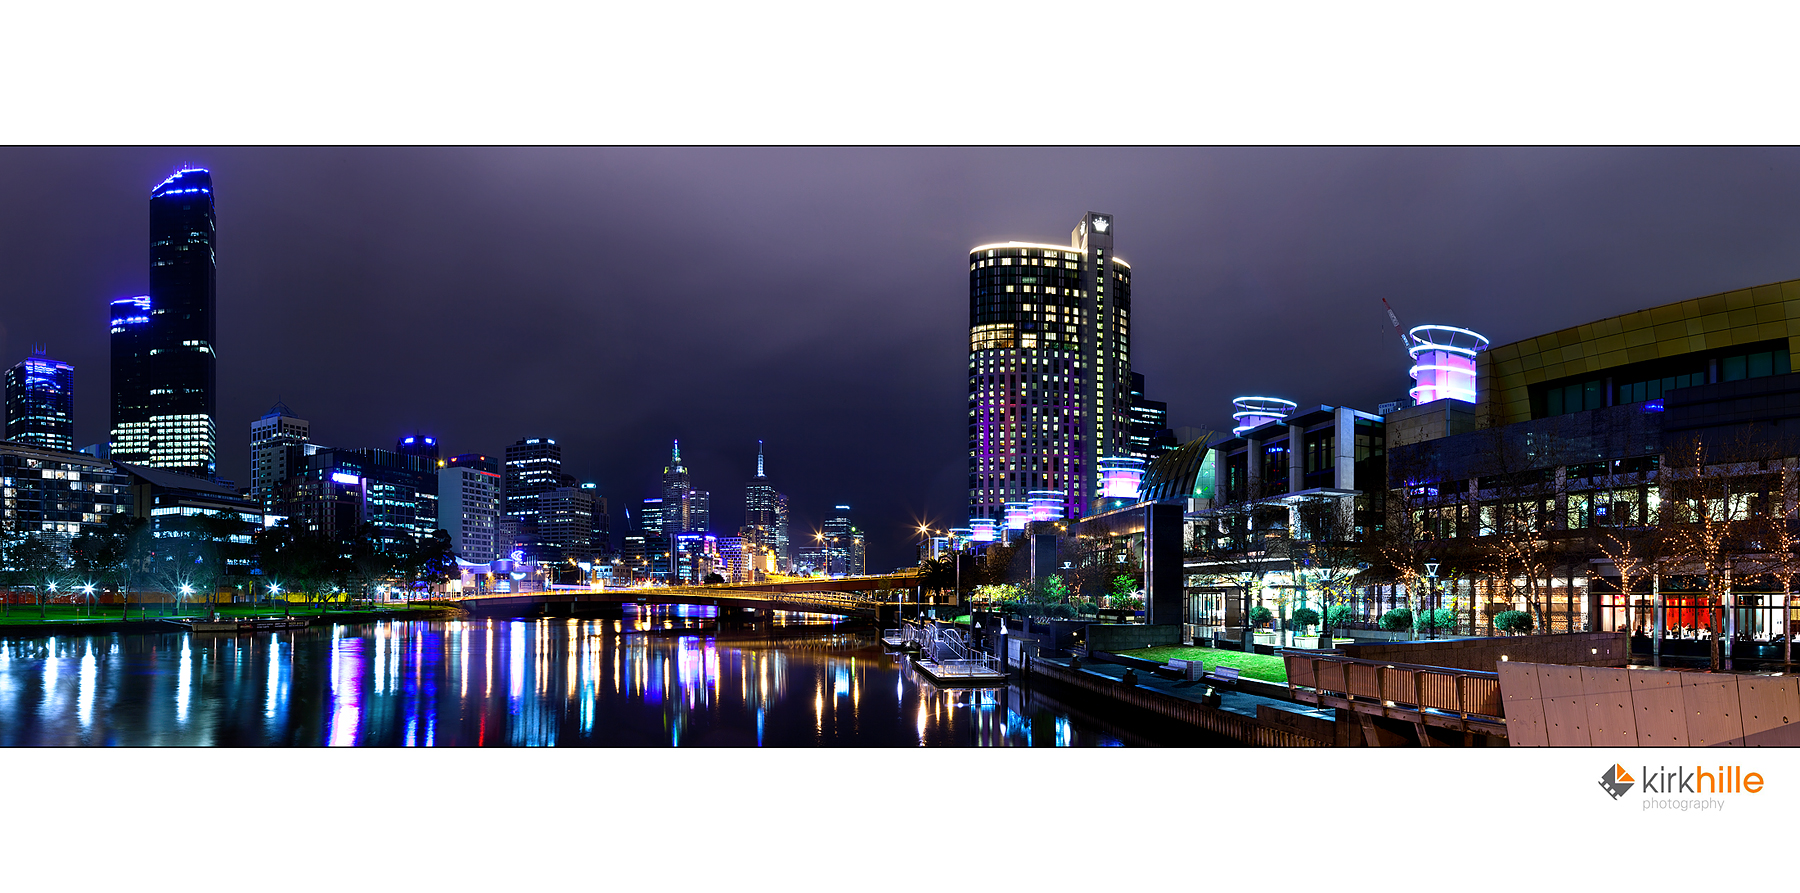 As date r in Melbourne